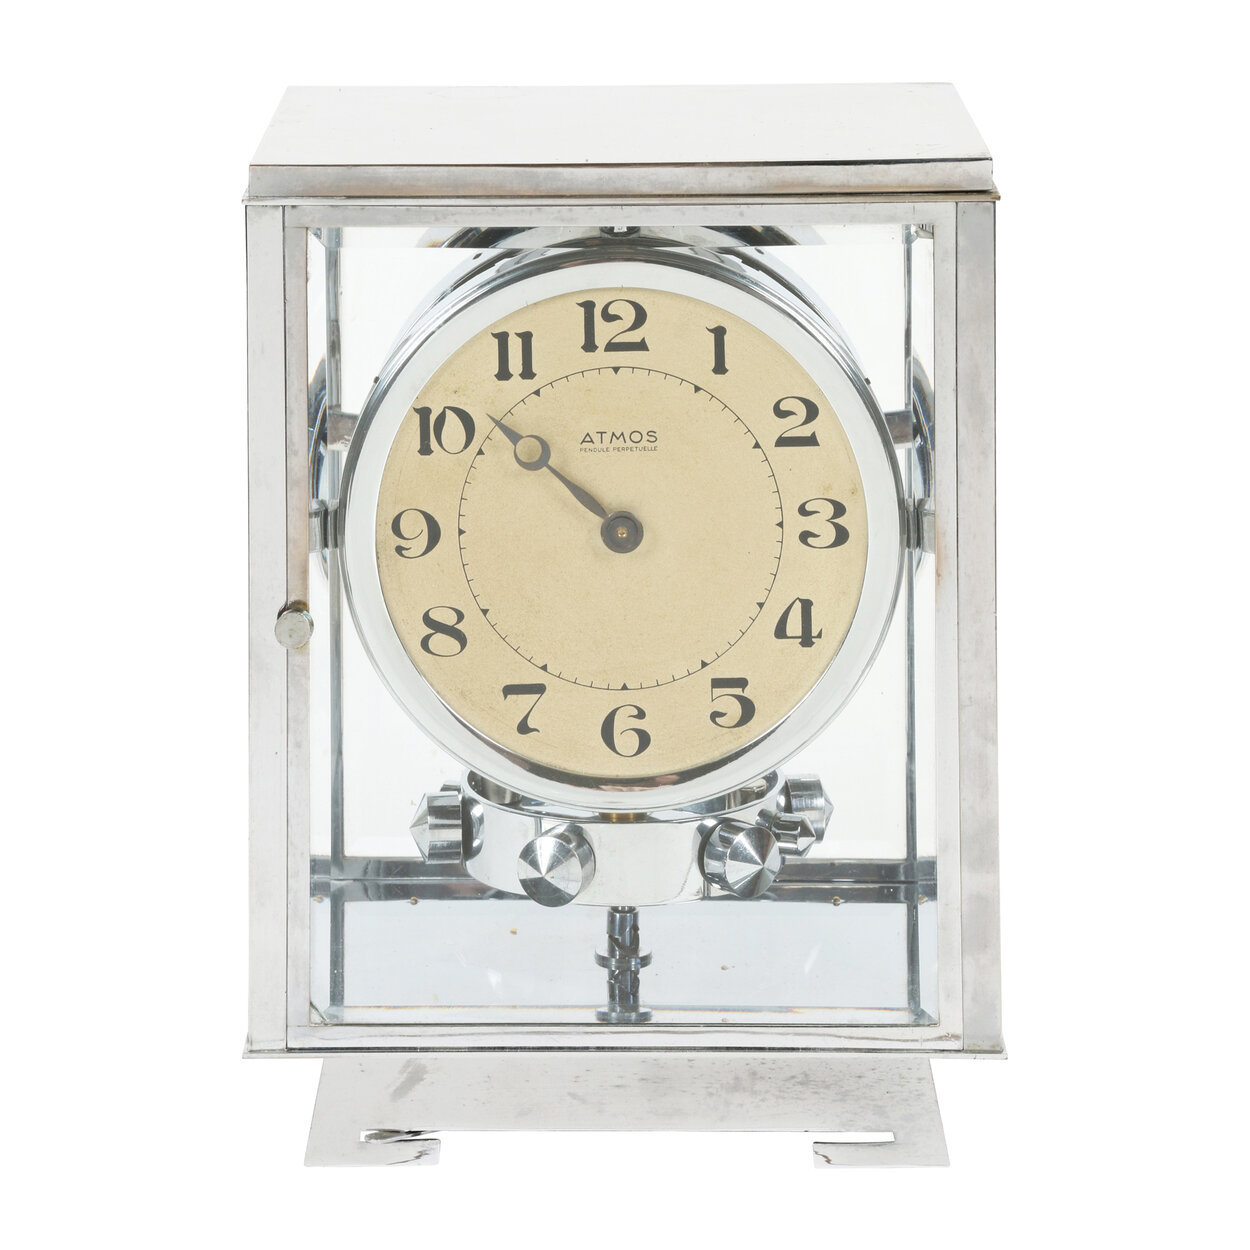 French Atmos Perpetual Time clock Chimes on Time for CA$6,490 in Miller  Miller Online-Only Auction